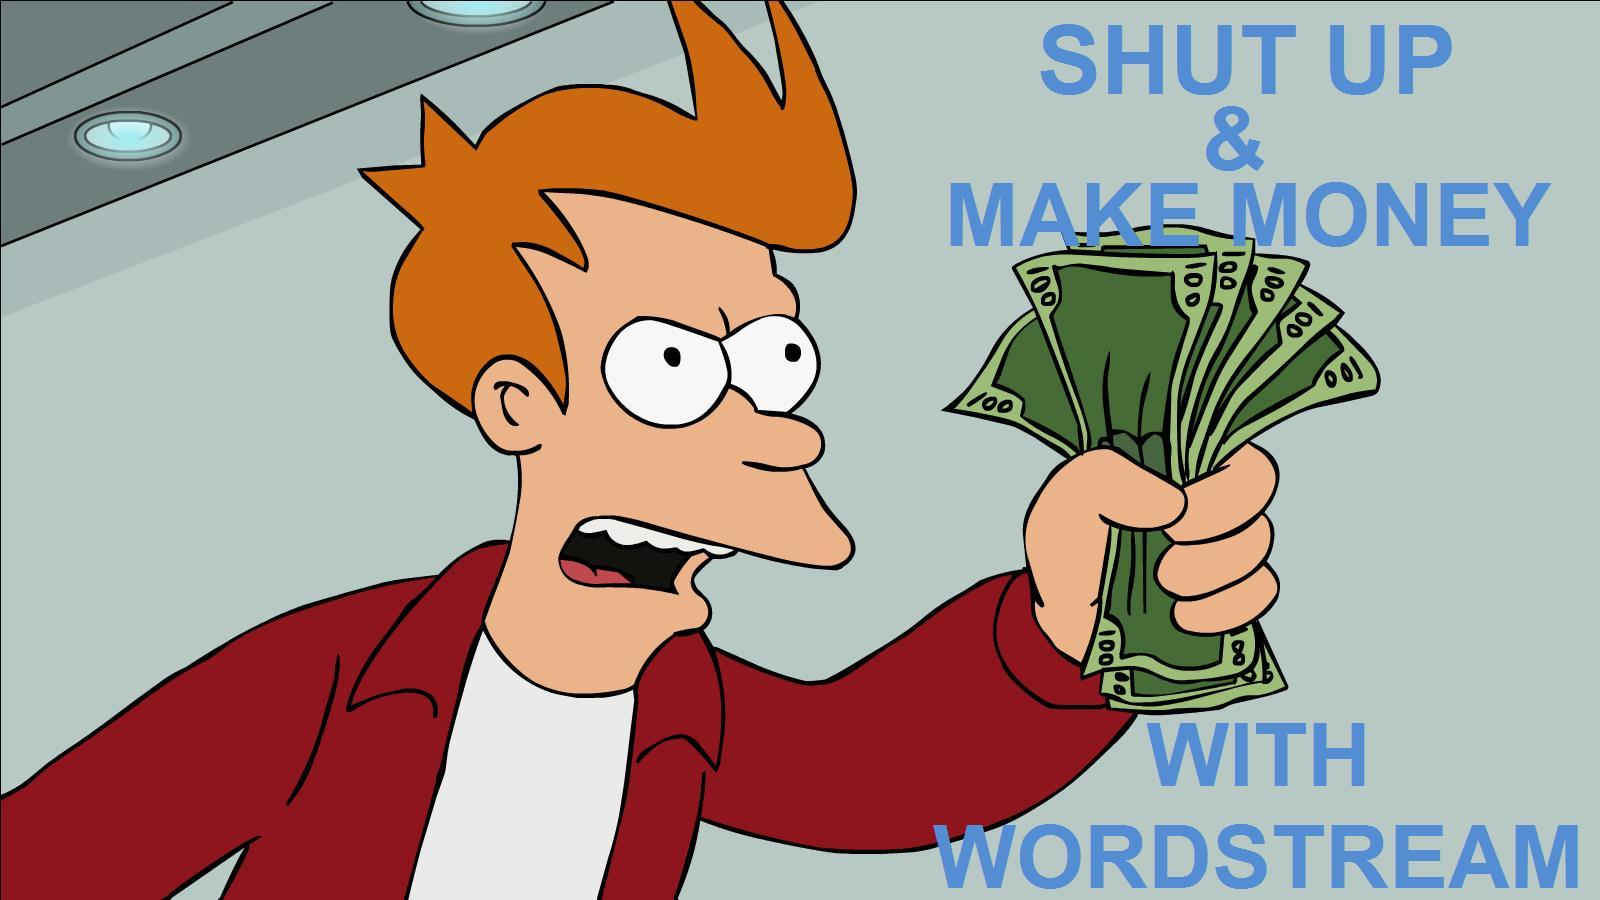 Shut up and make money with WordStream